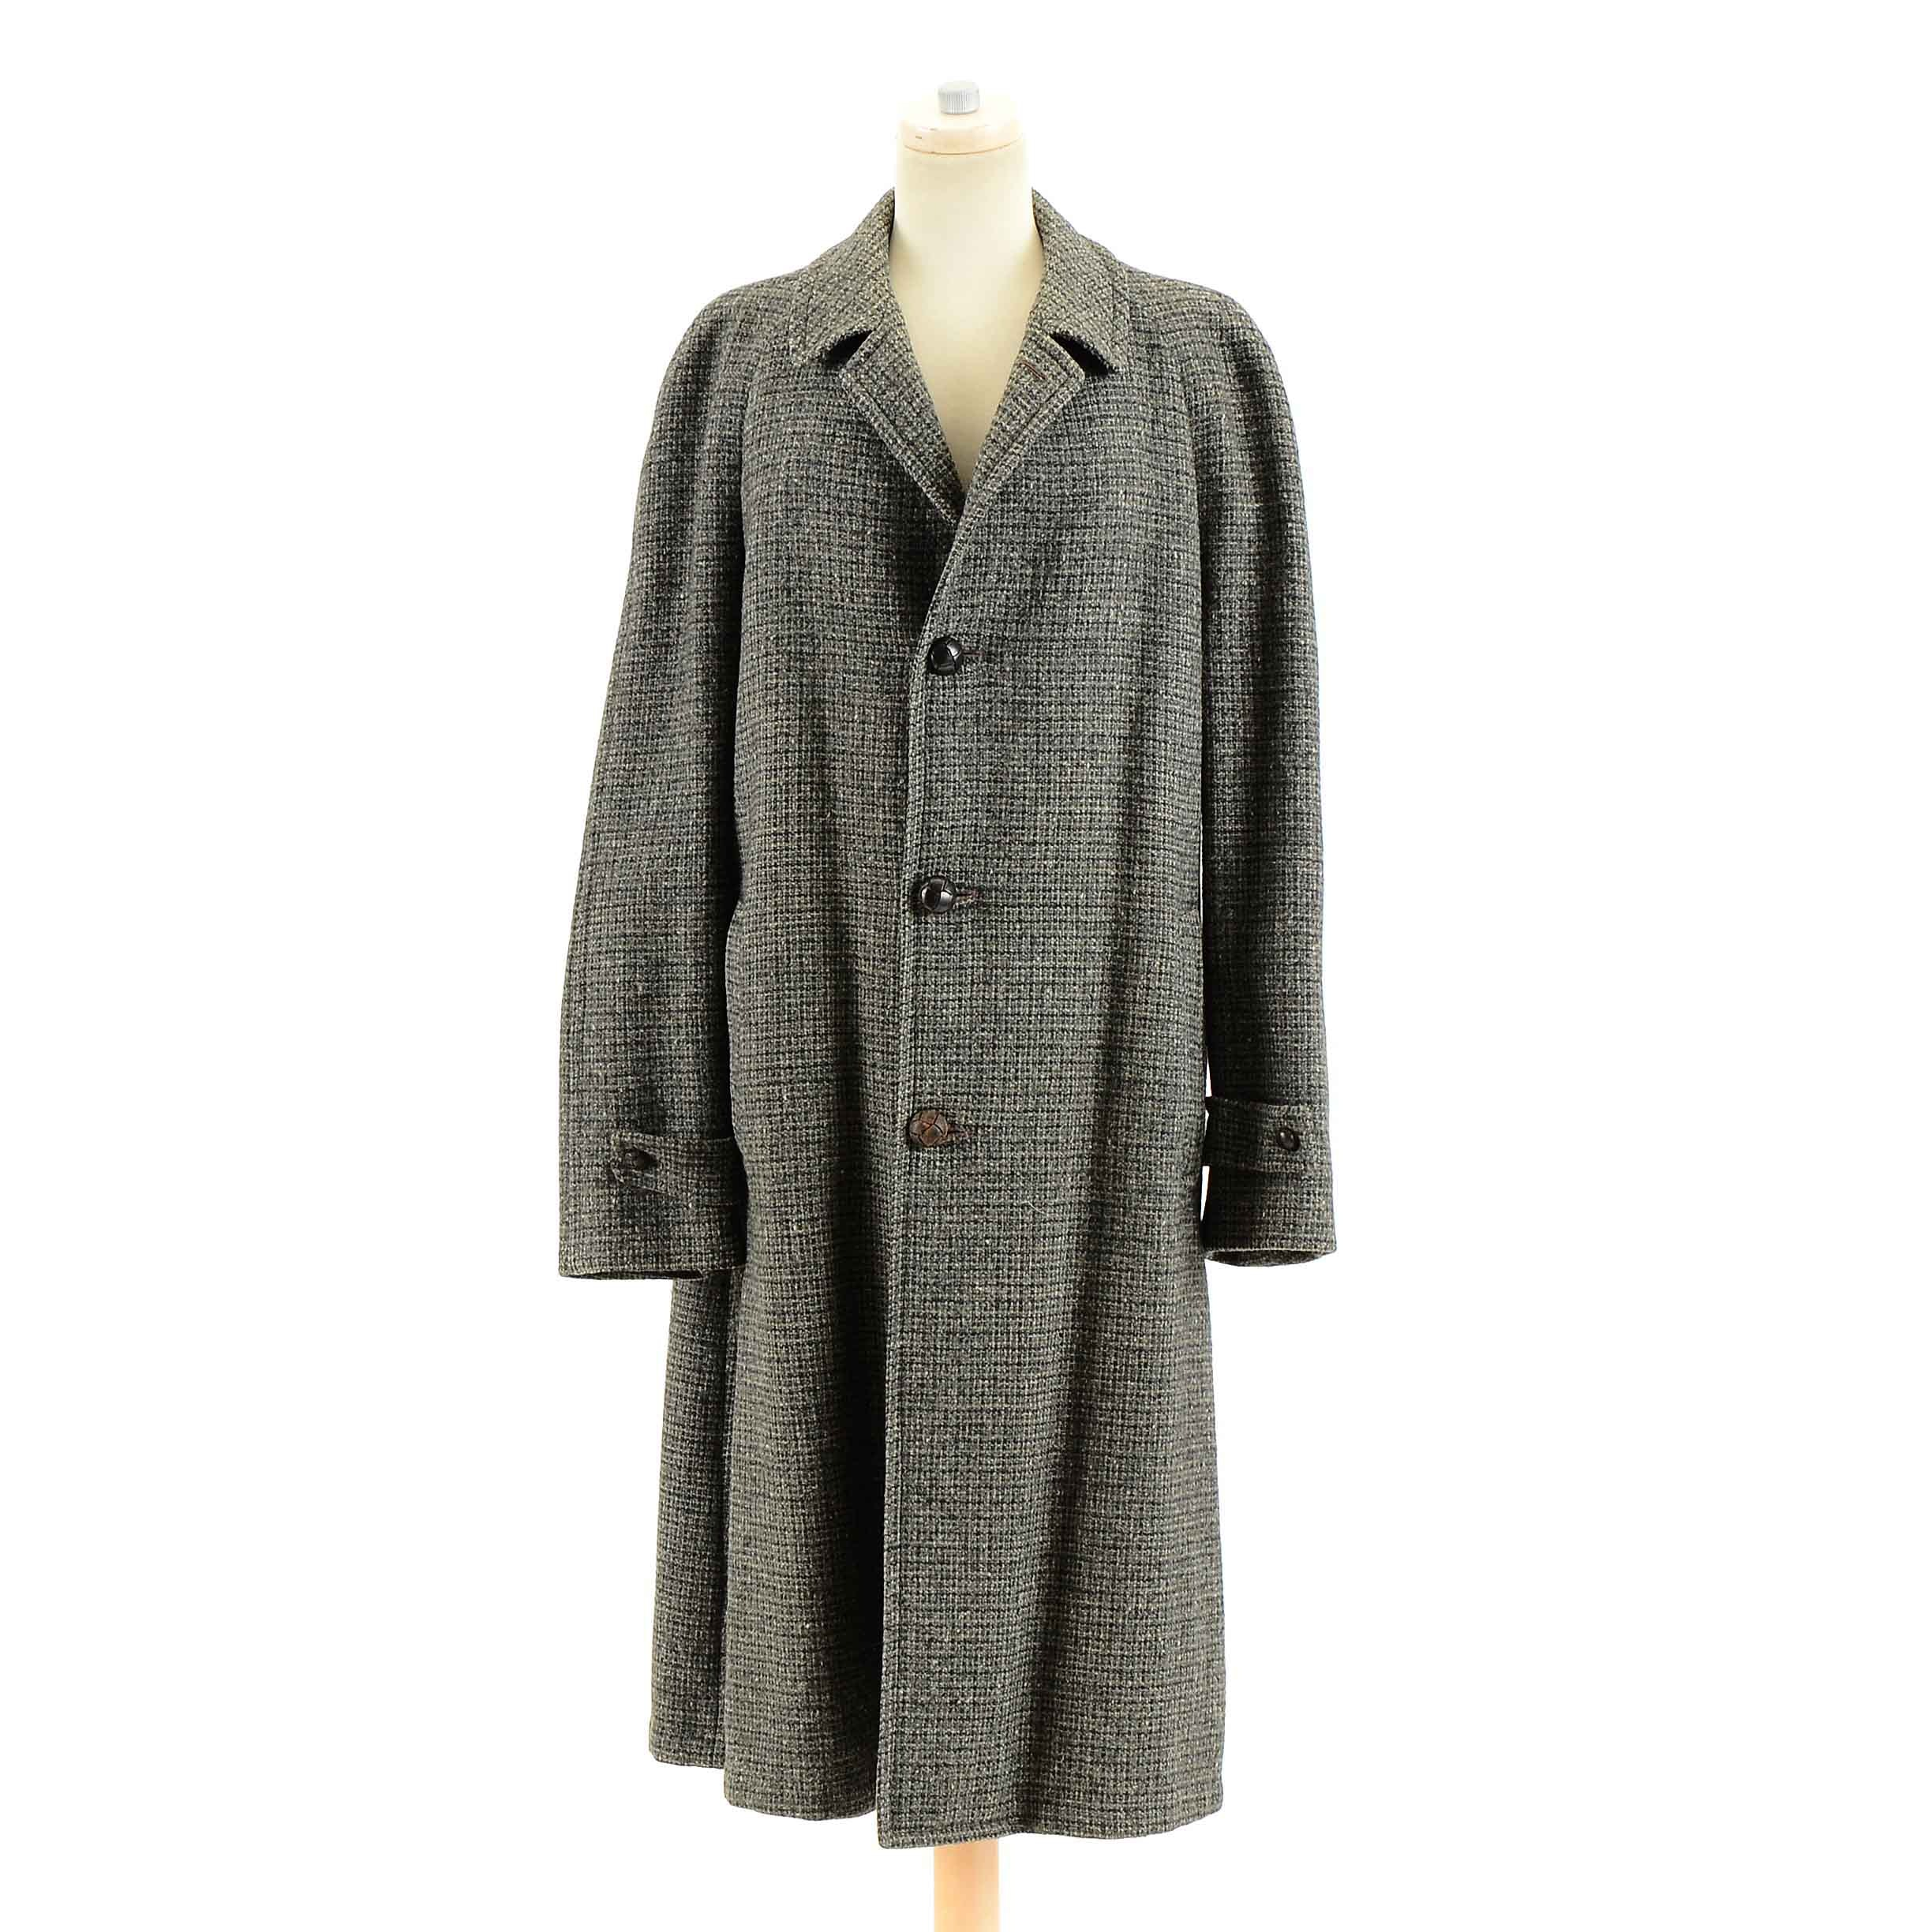 Vintage Men's Scottish Wool Coat by Harris Tweed